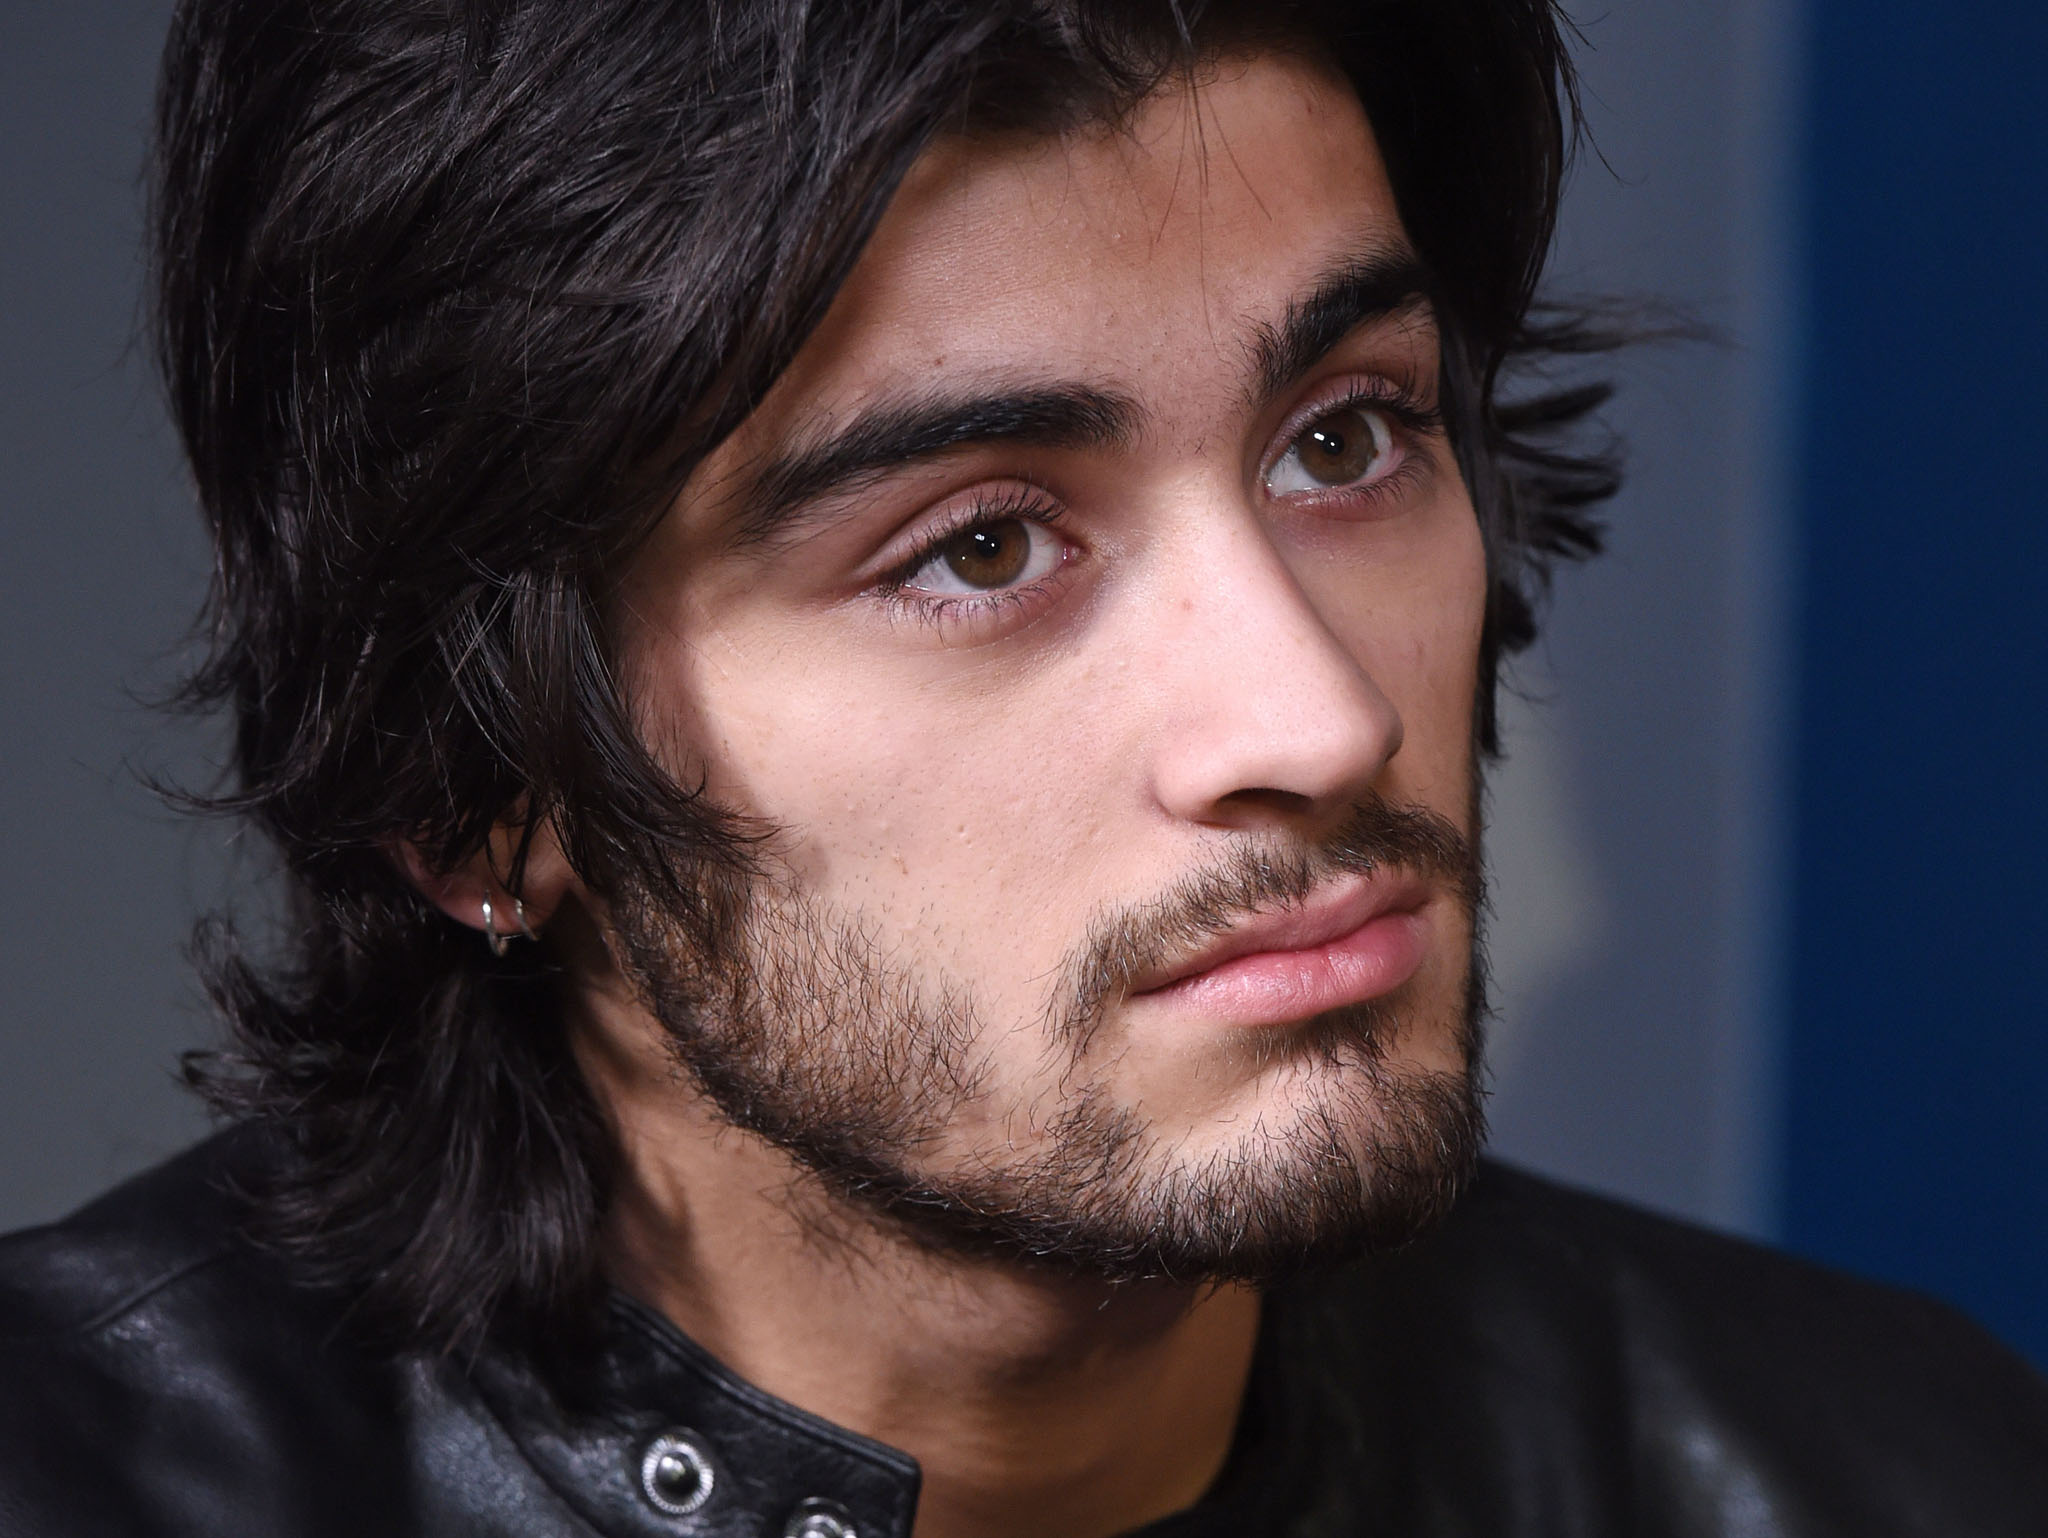 Zayn Malik layered hairstyle with Hairline